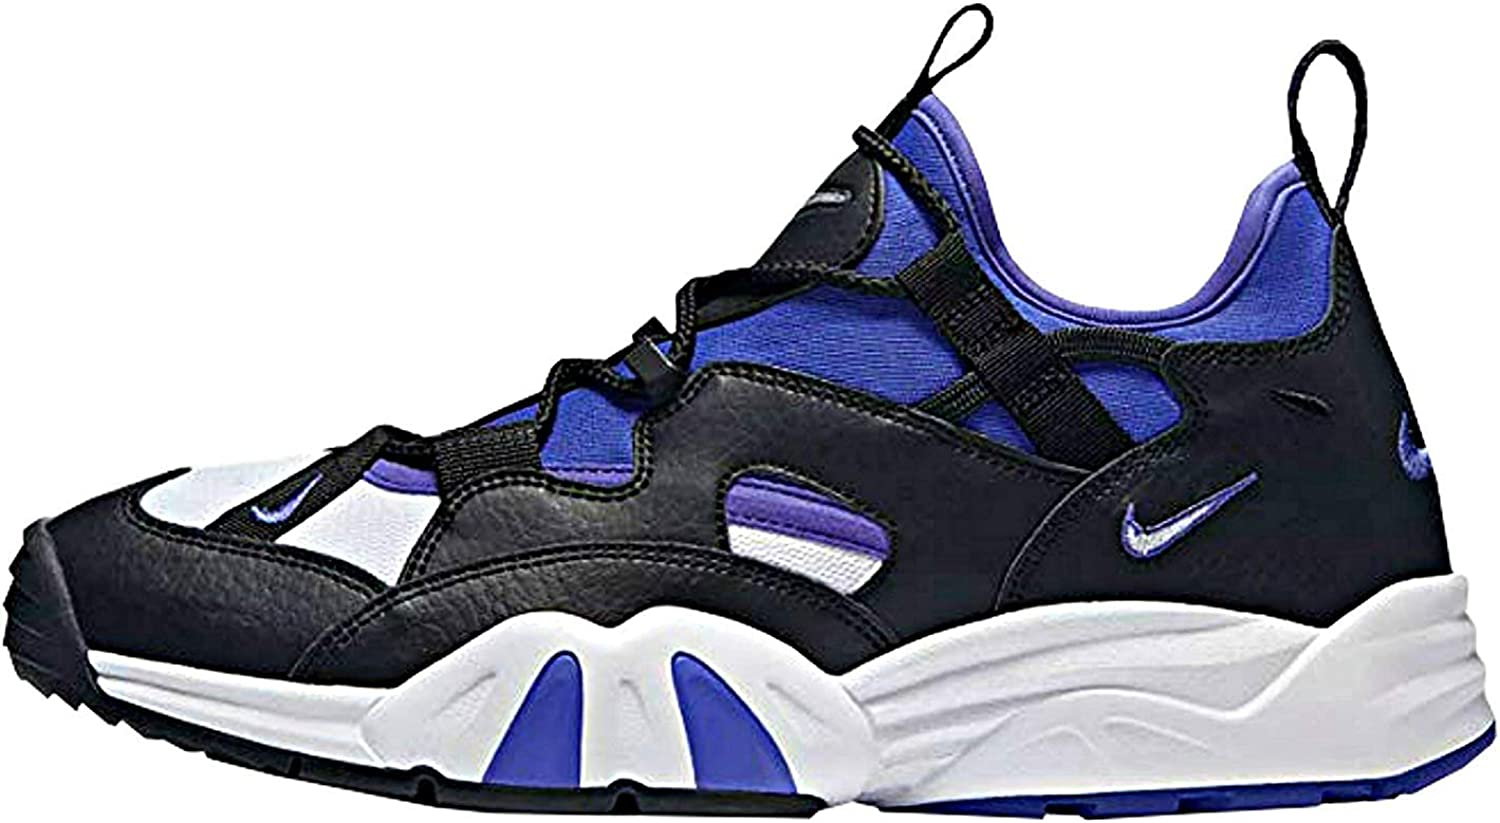 Nike Men's Air Scream Lwp Fitness shoes